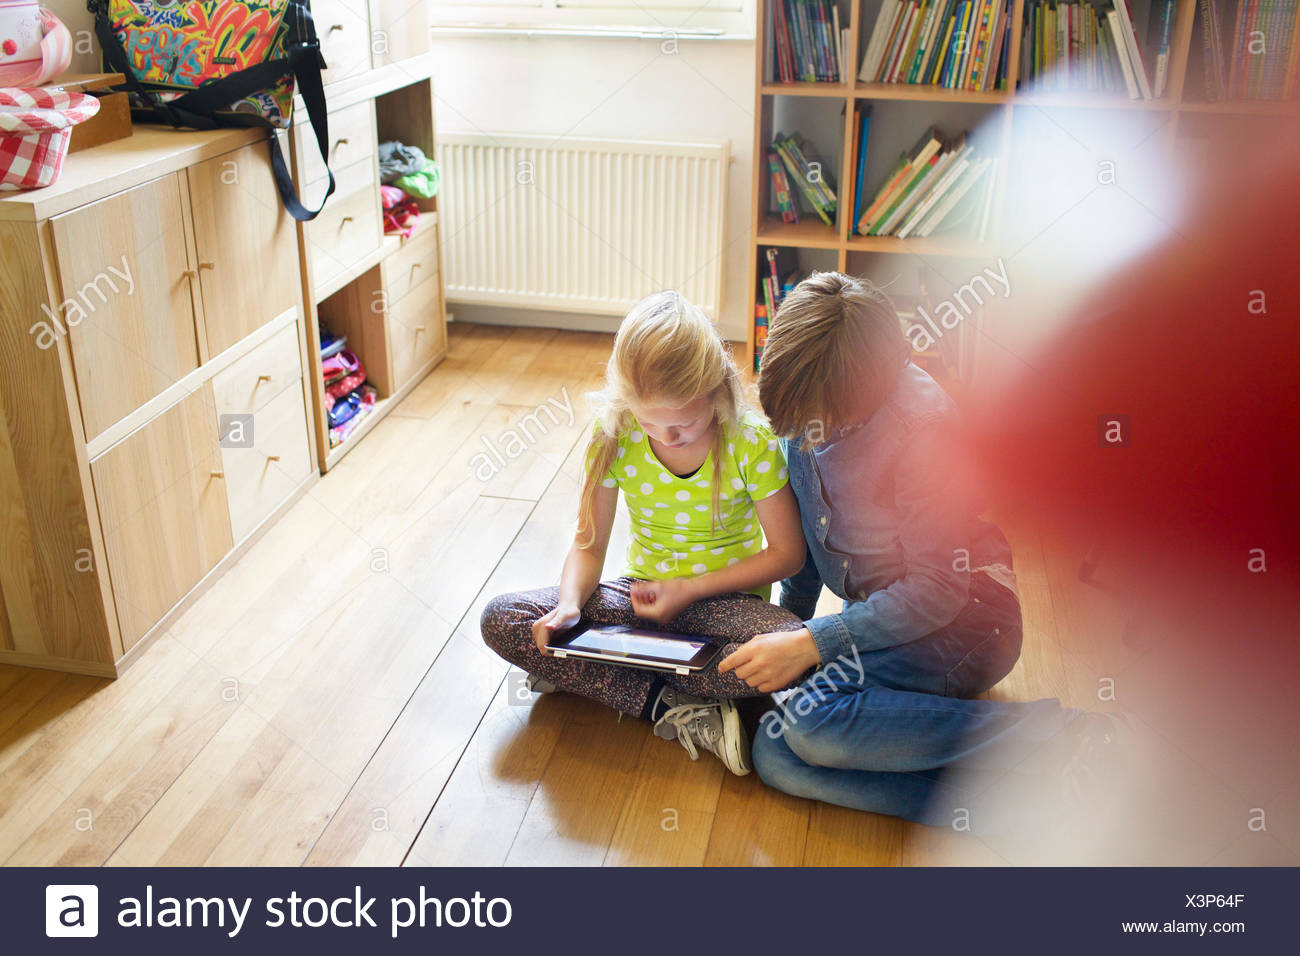 Brother and sister sharing and using digital tablet - Stock Image